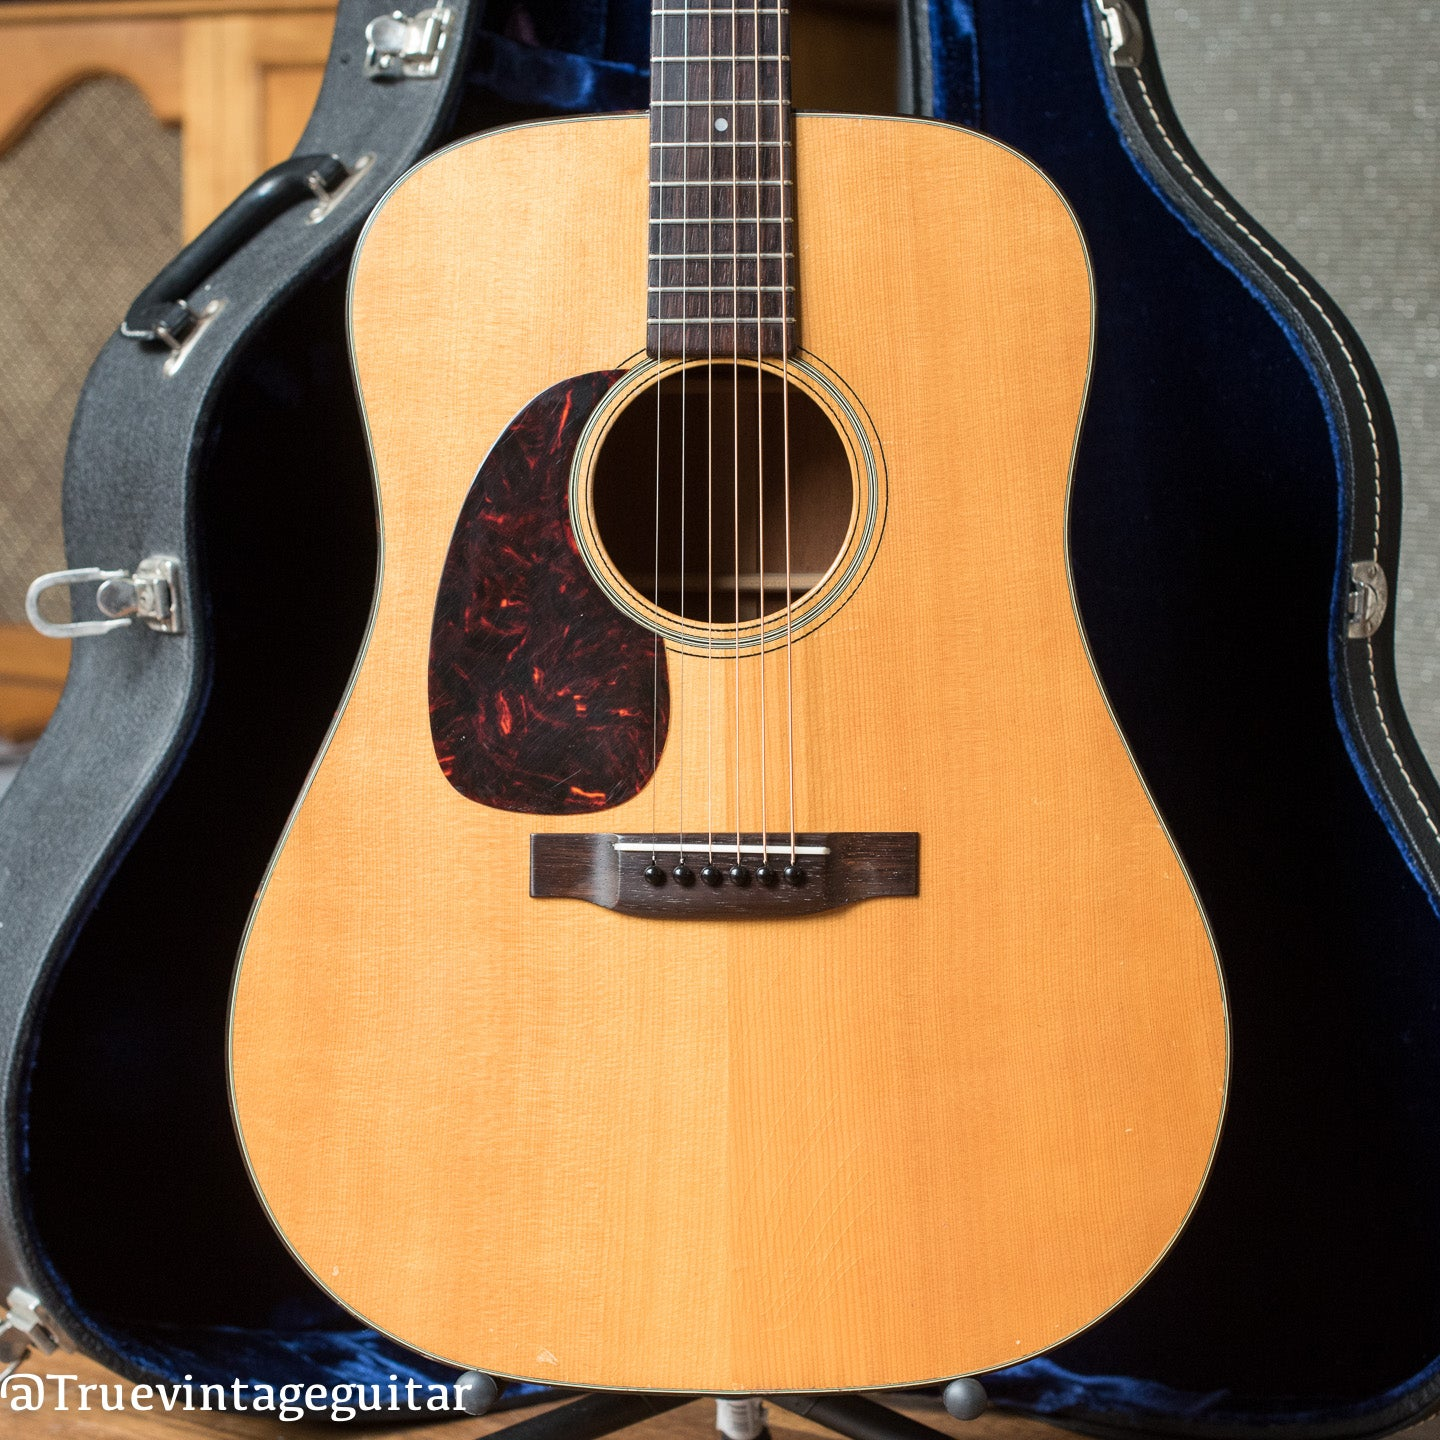 Vintage 1959 Martin D-18L Lefty left handed